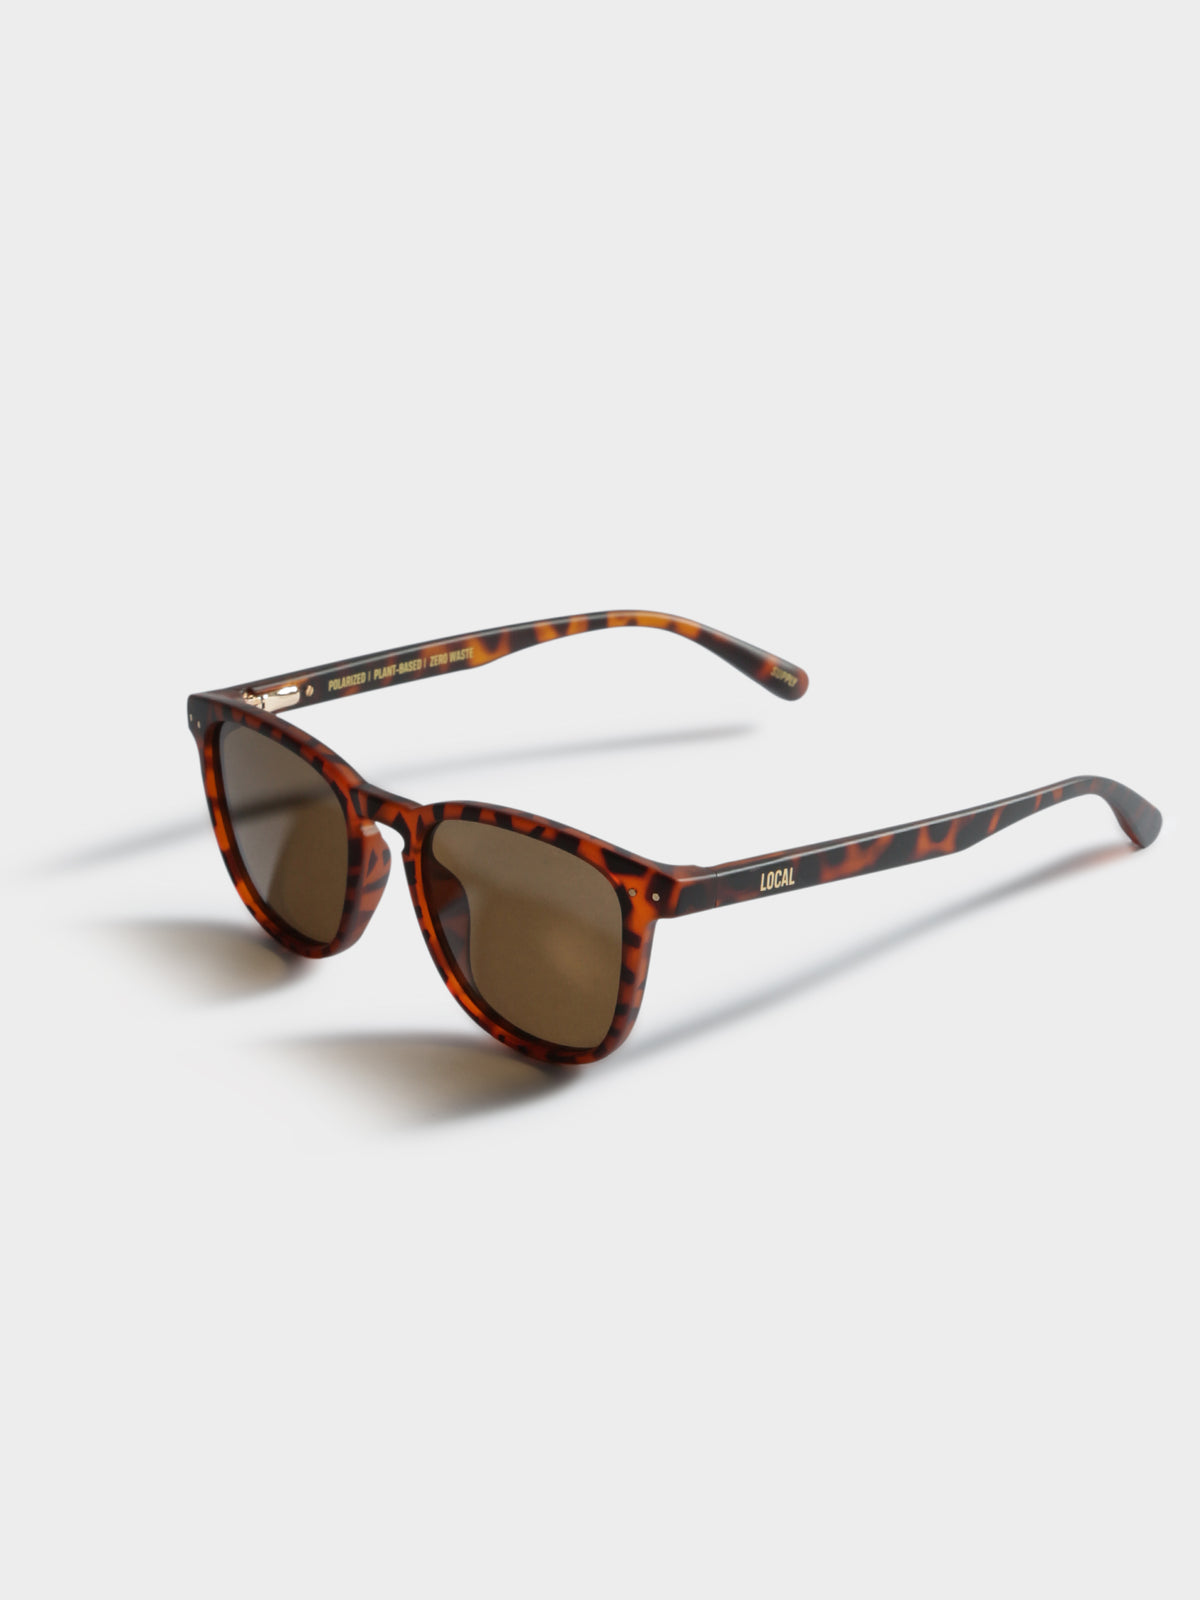 SYD Polarized Sunglasses in Tortoise Shell Brown